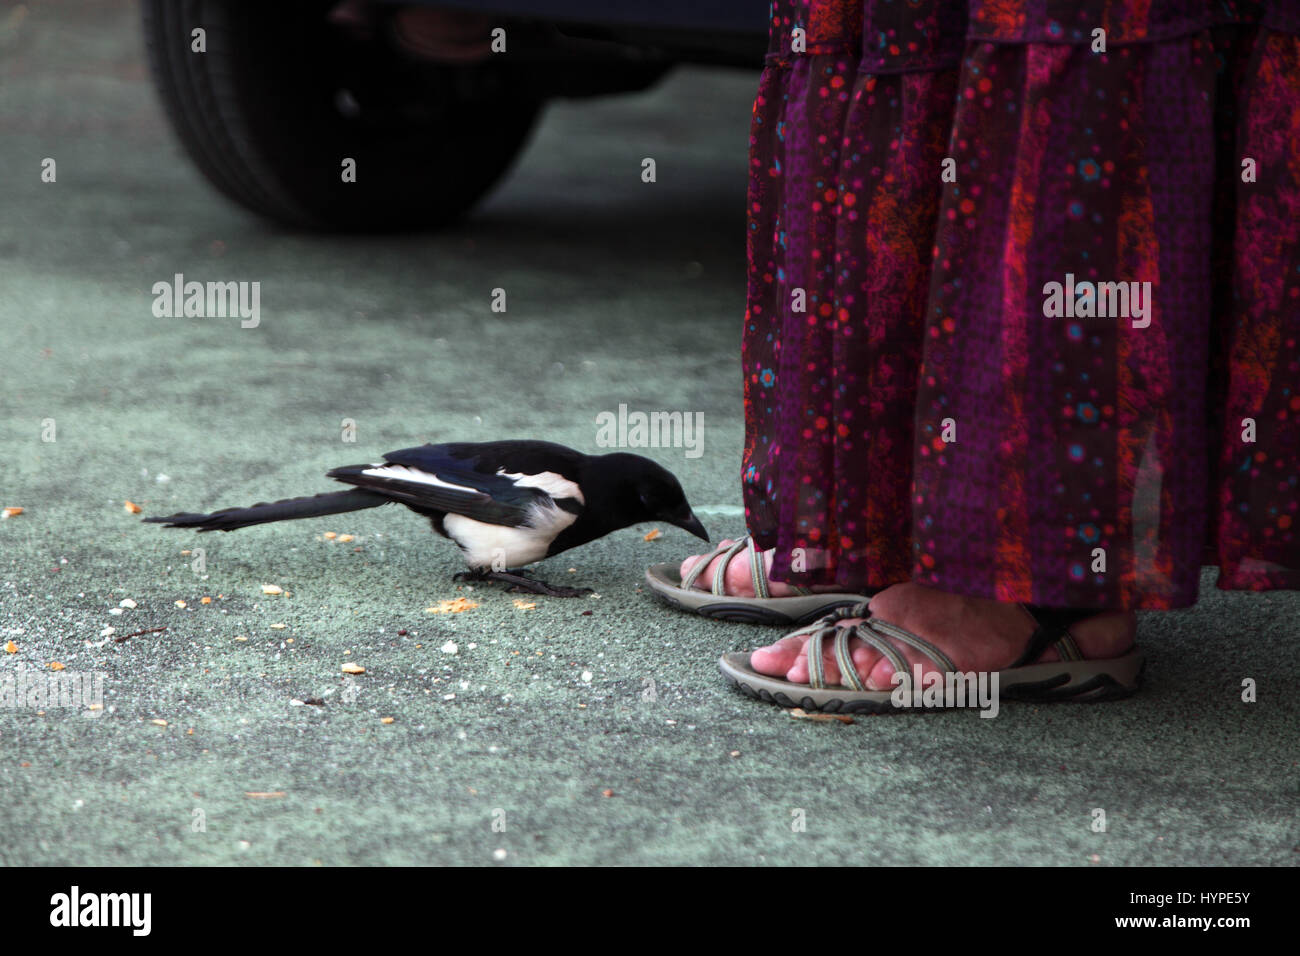 France,Animal behaviour, magpie coming closer to human feet - Stock Image